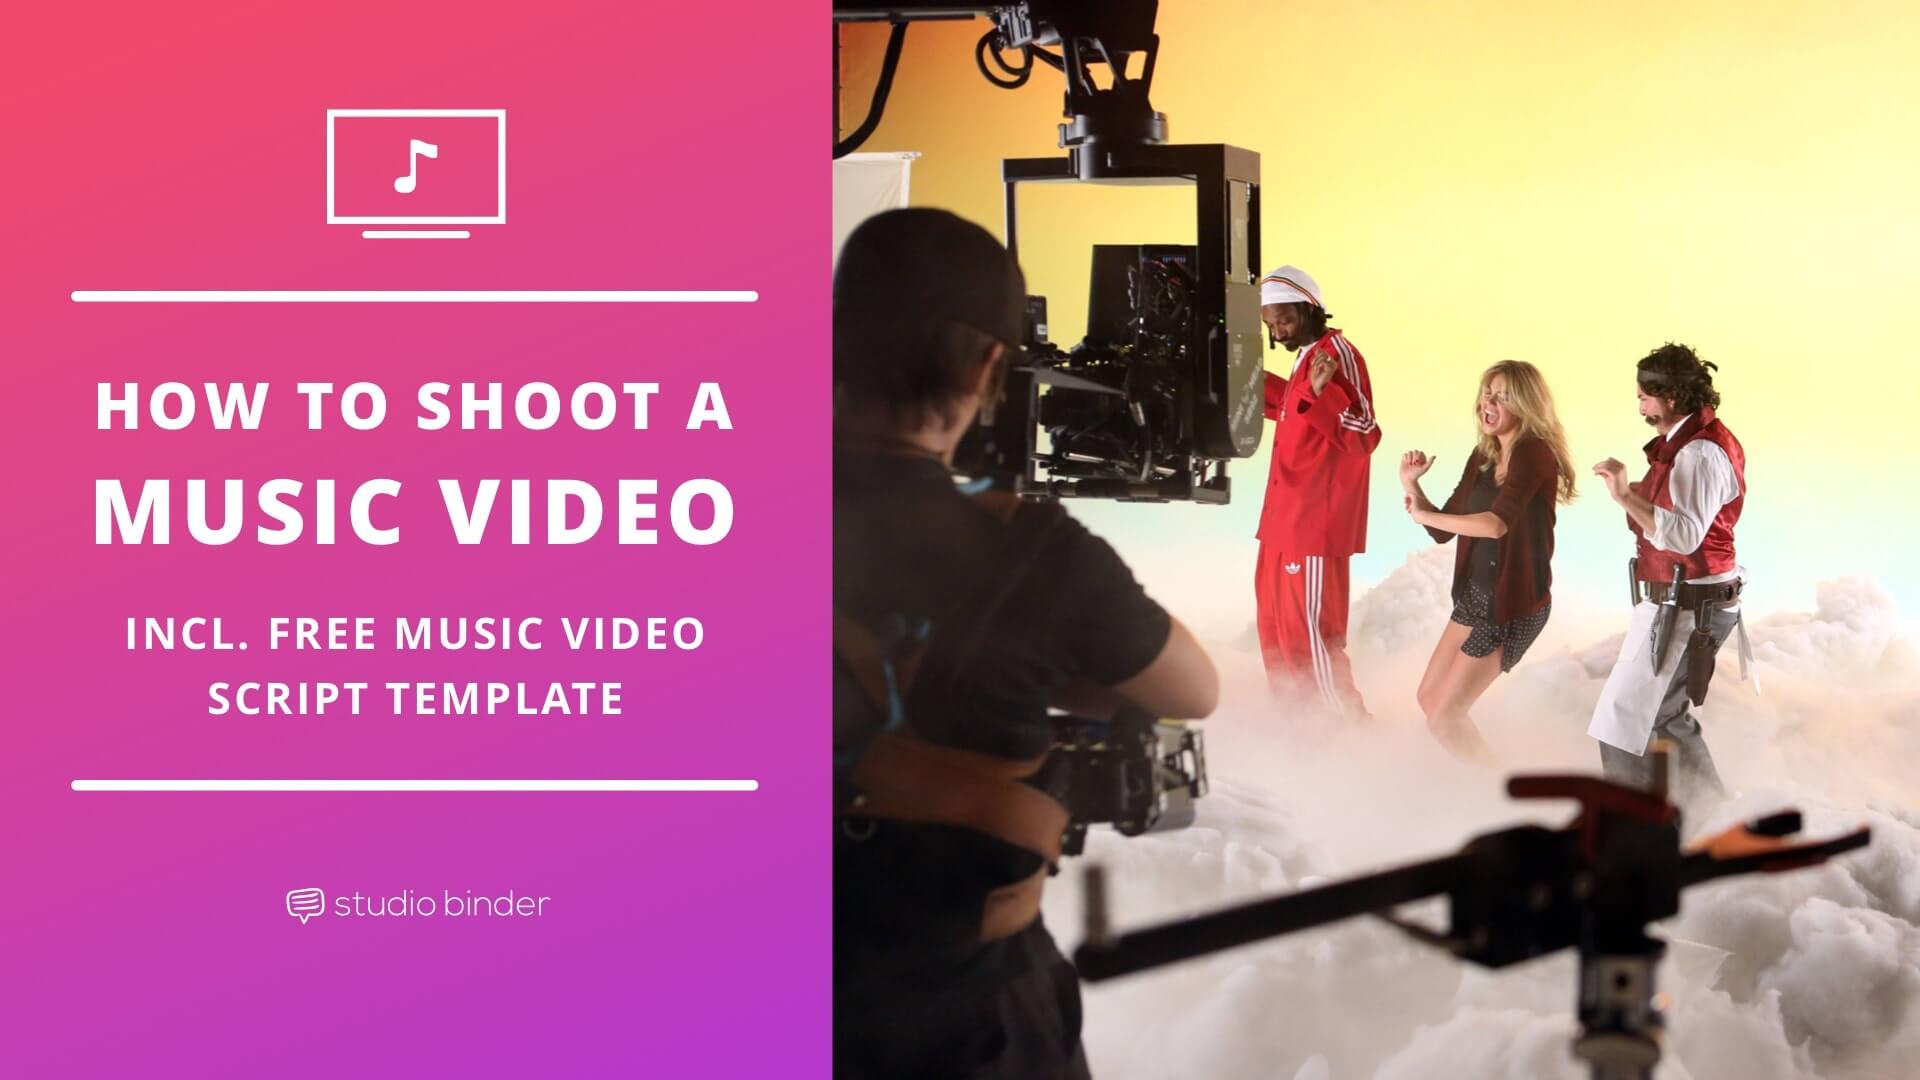 how to shoot a music video with free music video script template